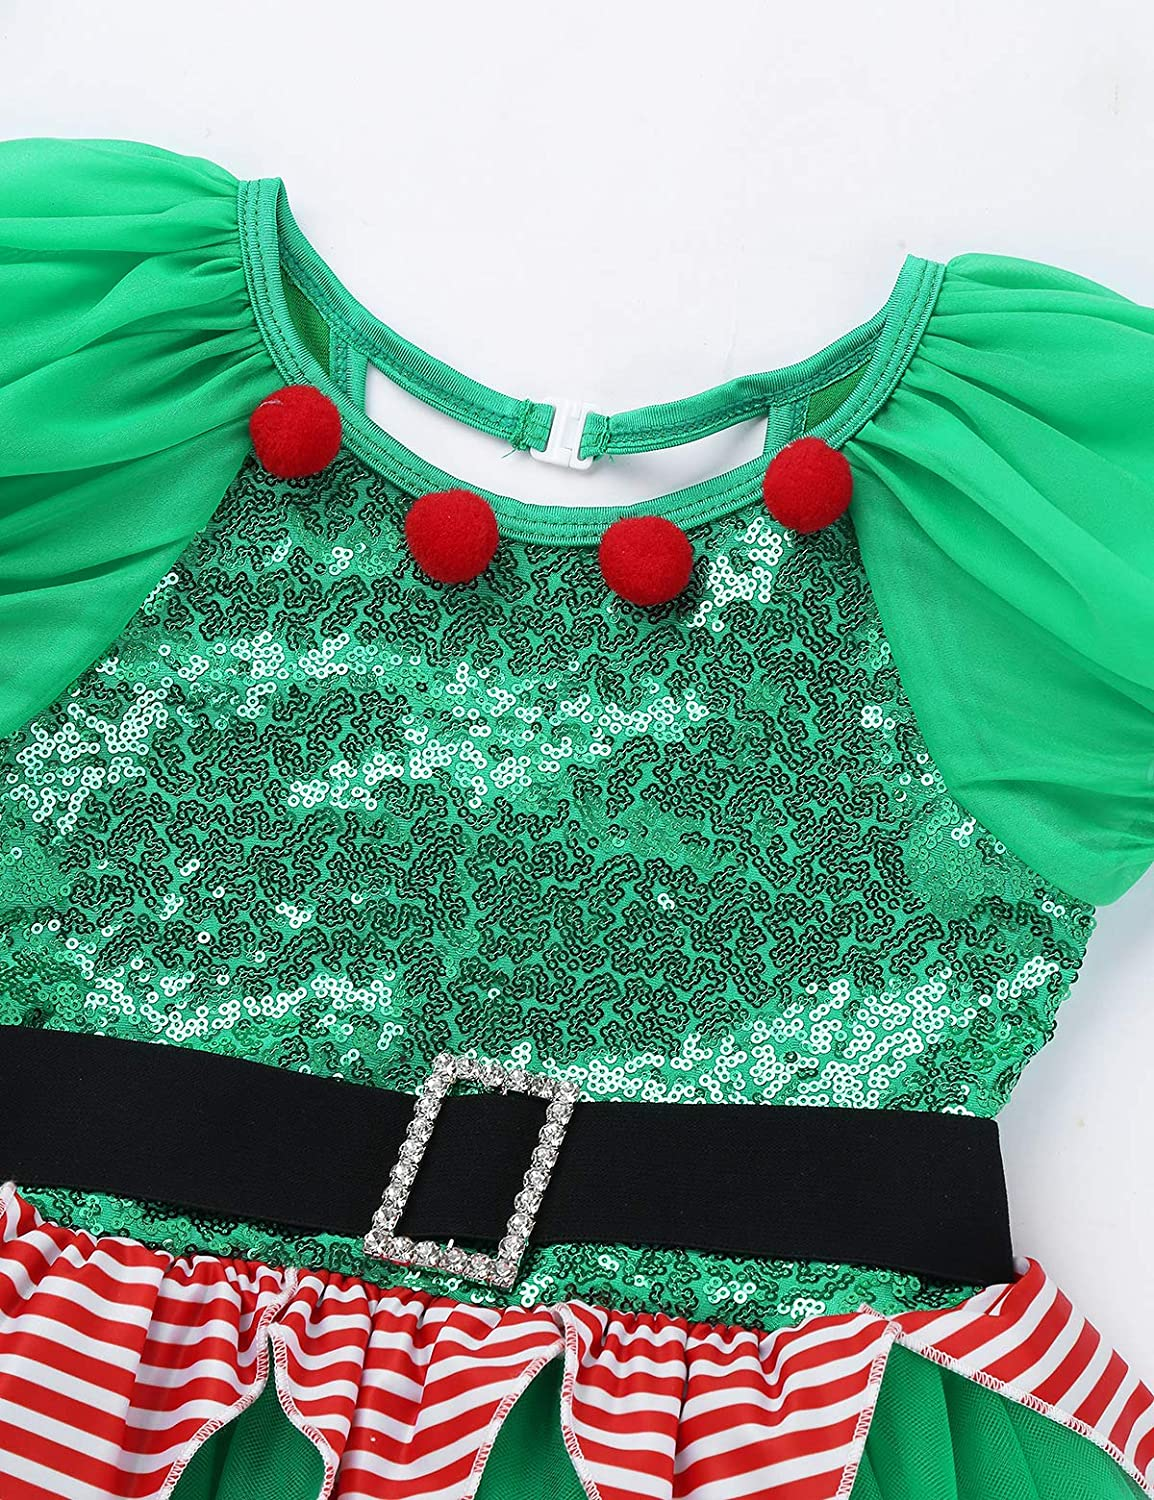 YiZYiF Children Girls Christmas Elf Costume Holiday Party Sequin Cosplay Dress Festive Suits